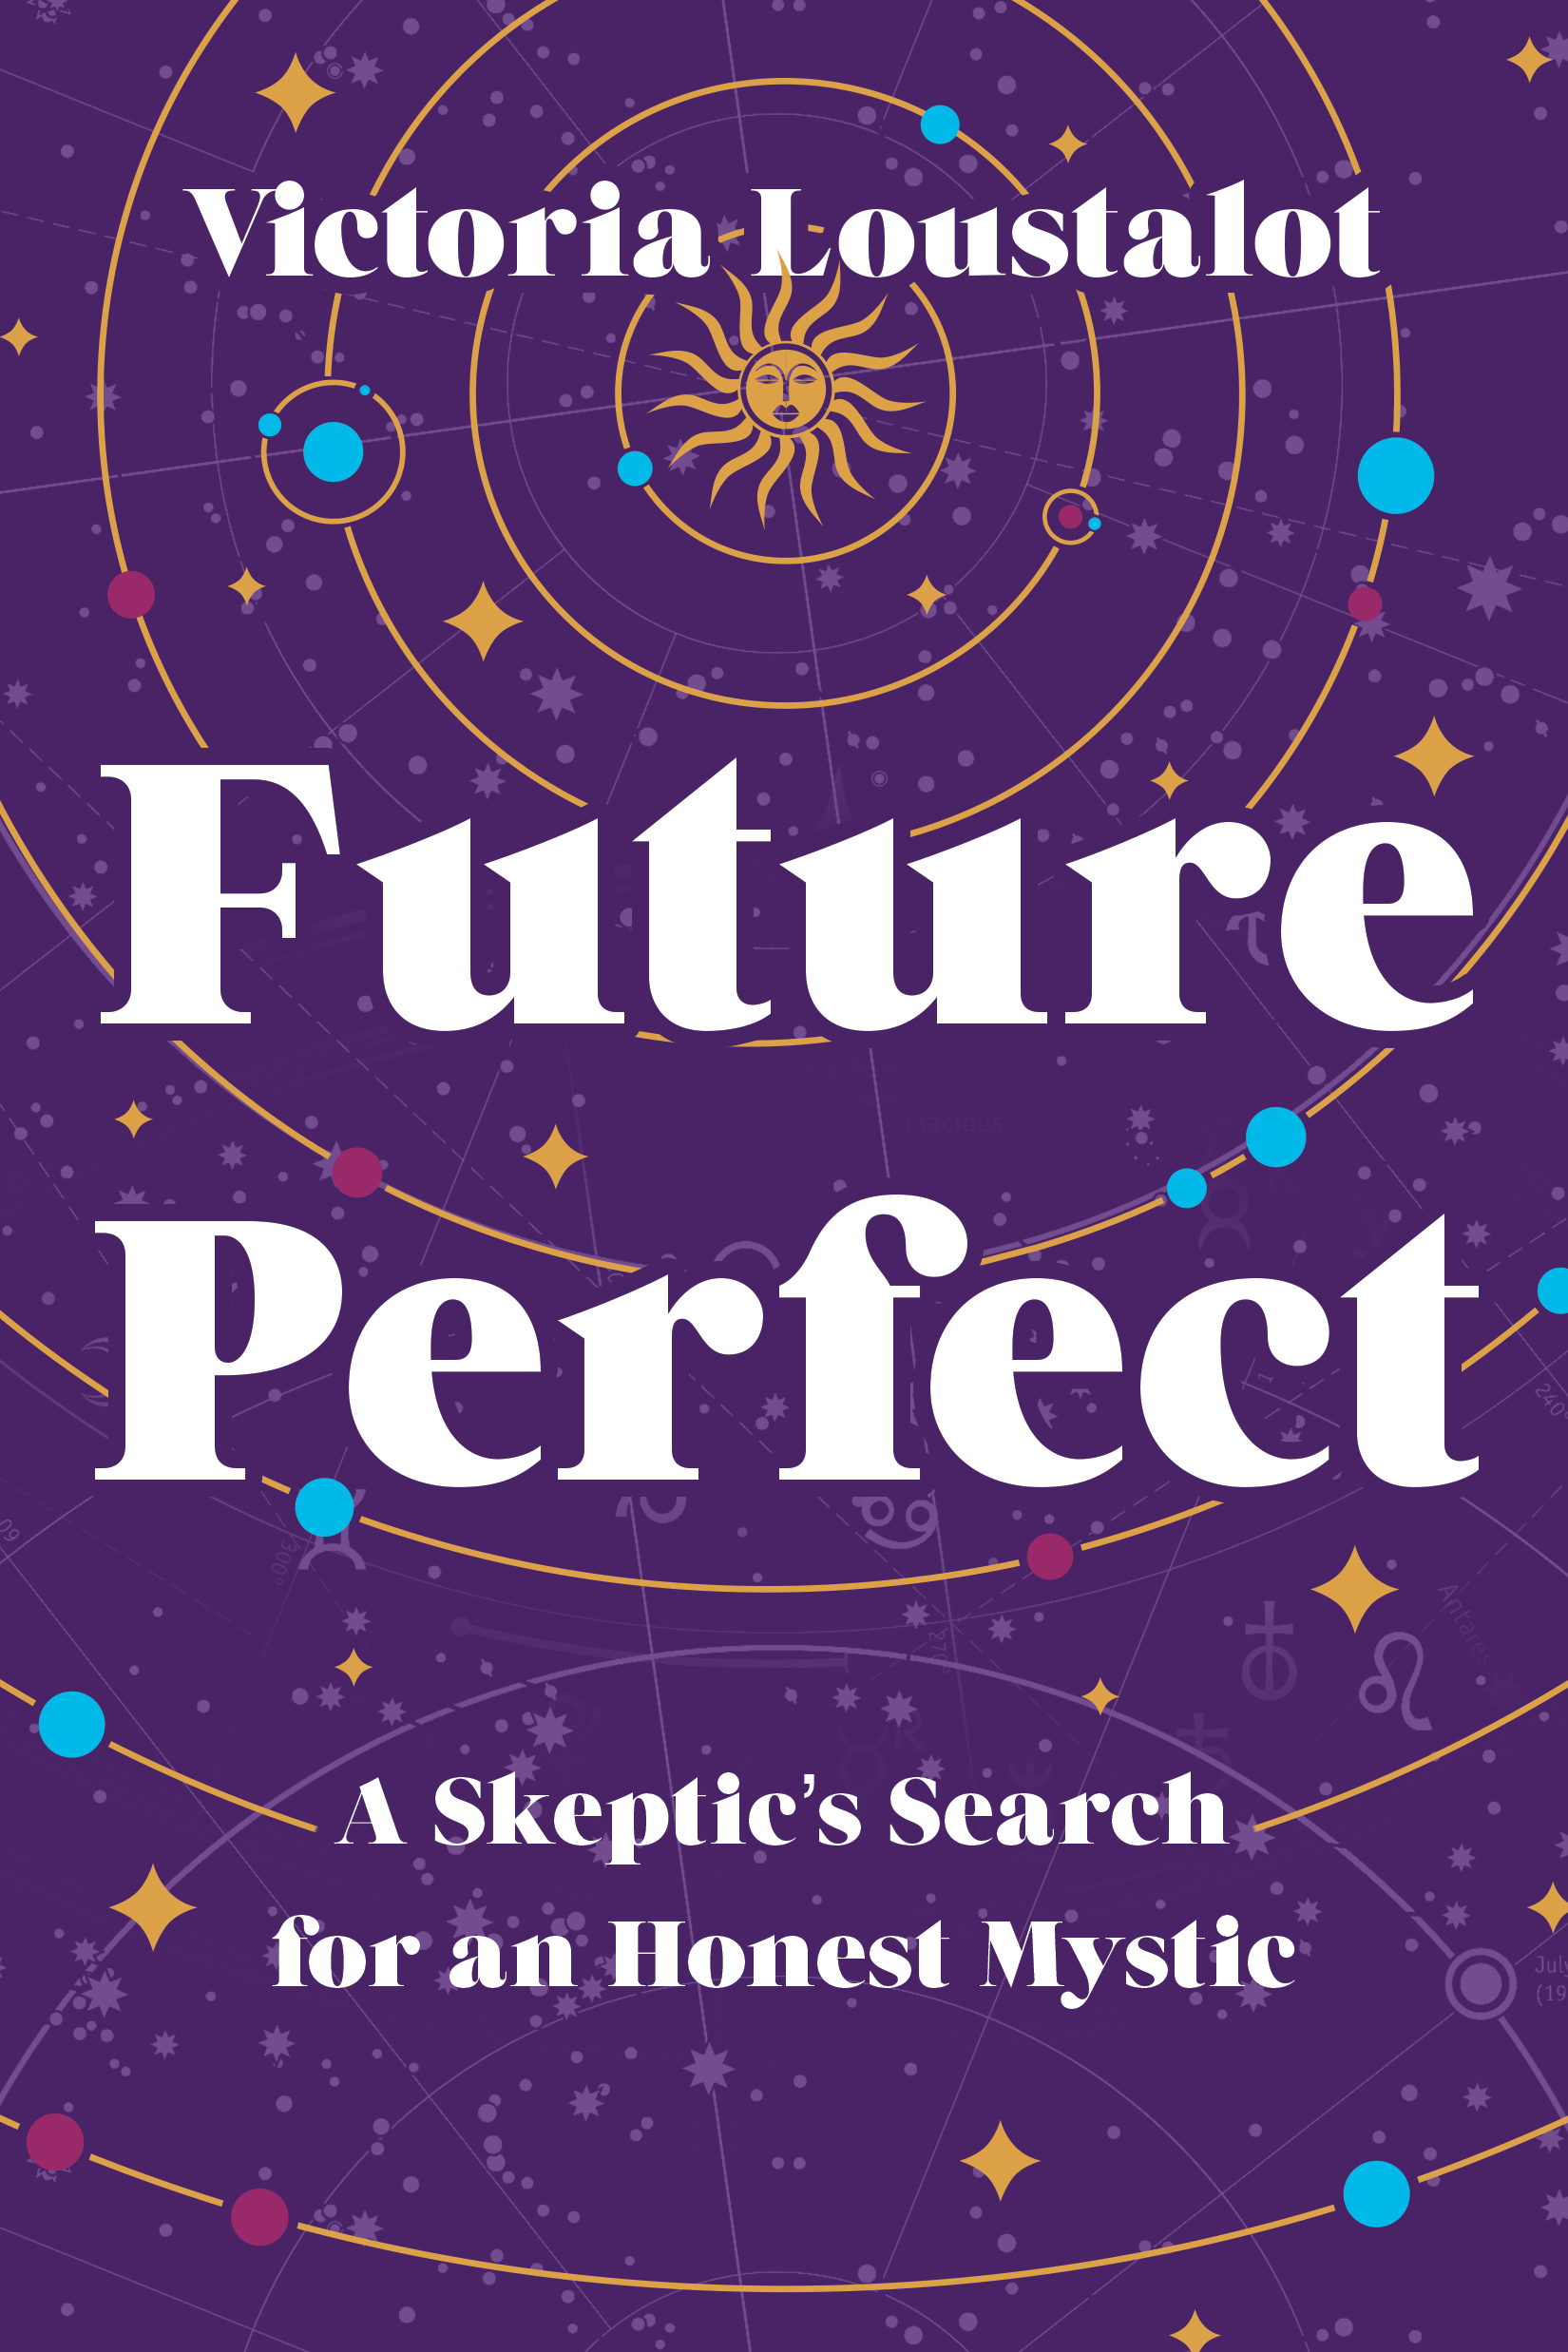 Book Launch: Future Perfect by Victoria Loustalot, in conversation with Ankur Thakkar and mini-readings by psychic Catherine River-Rain